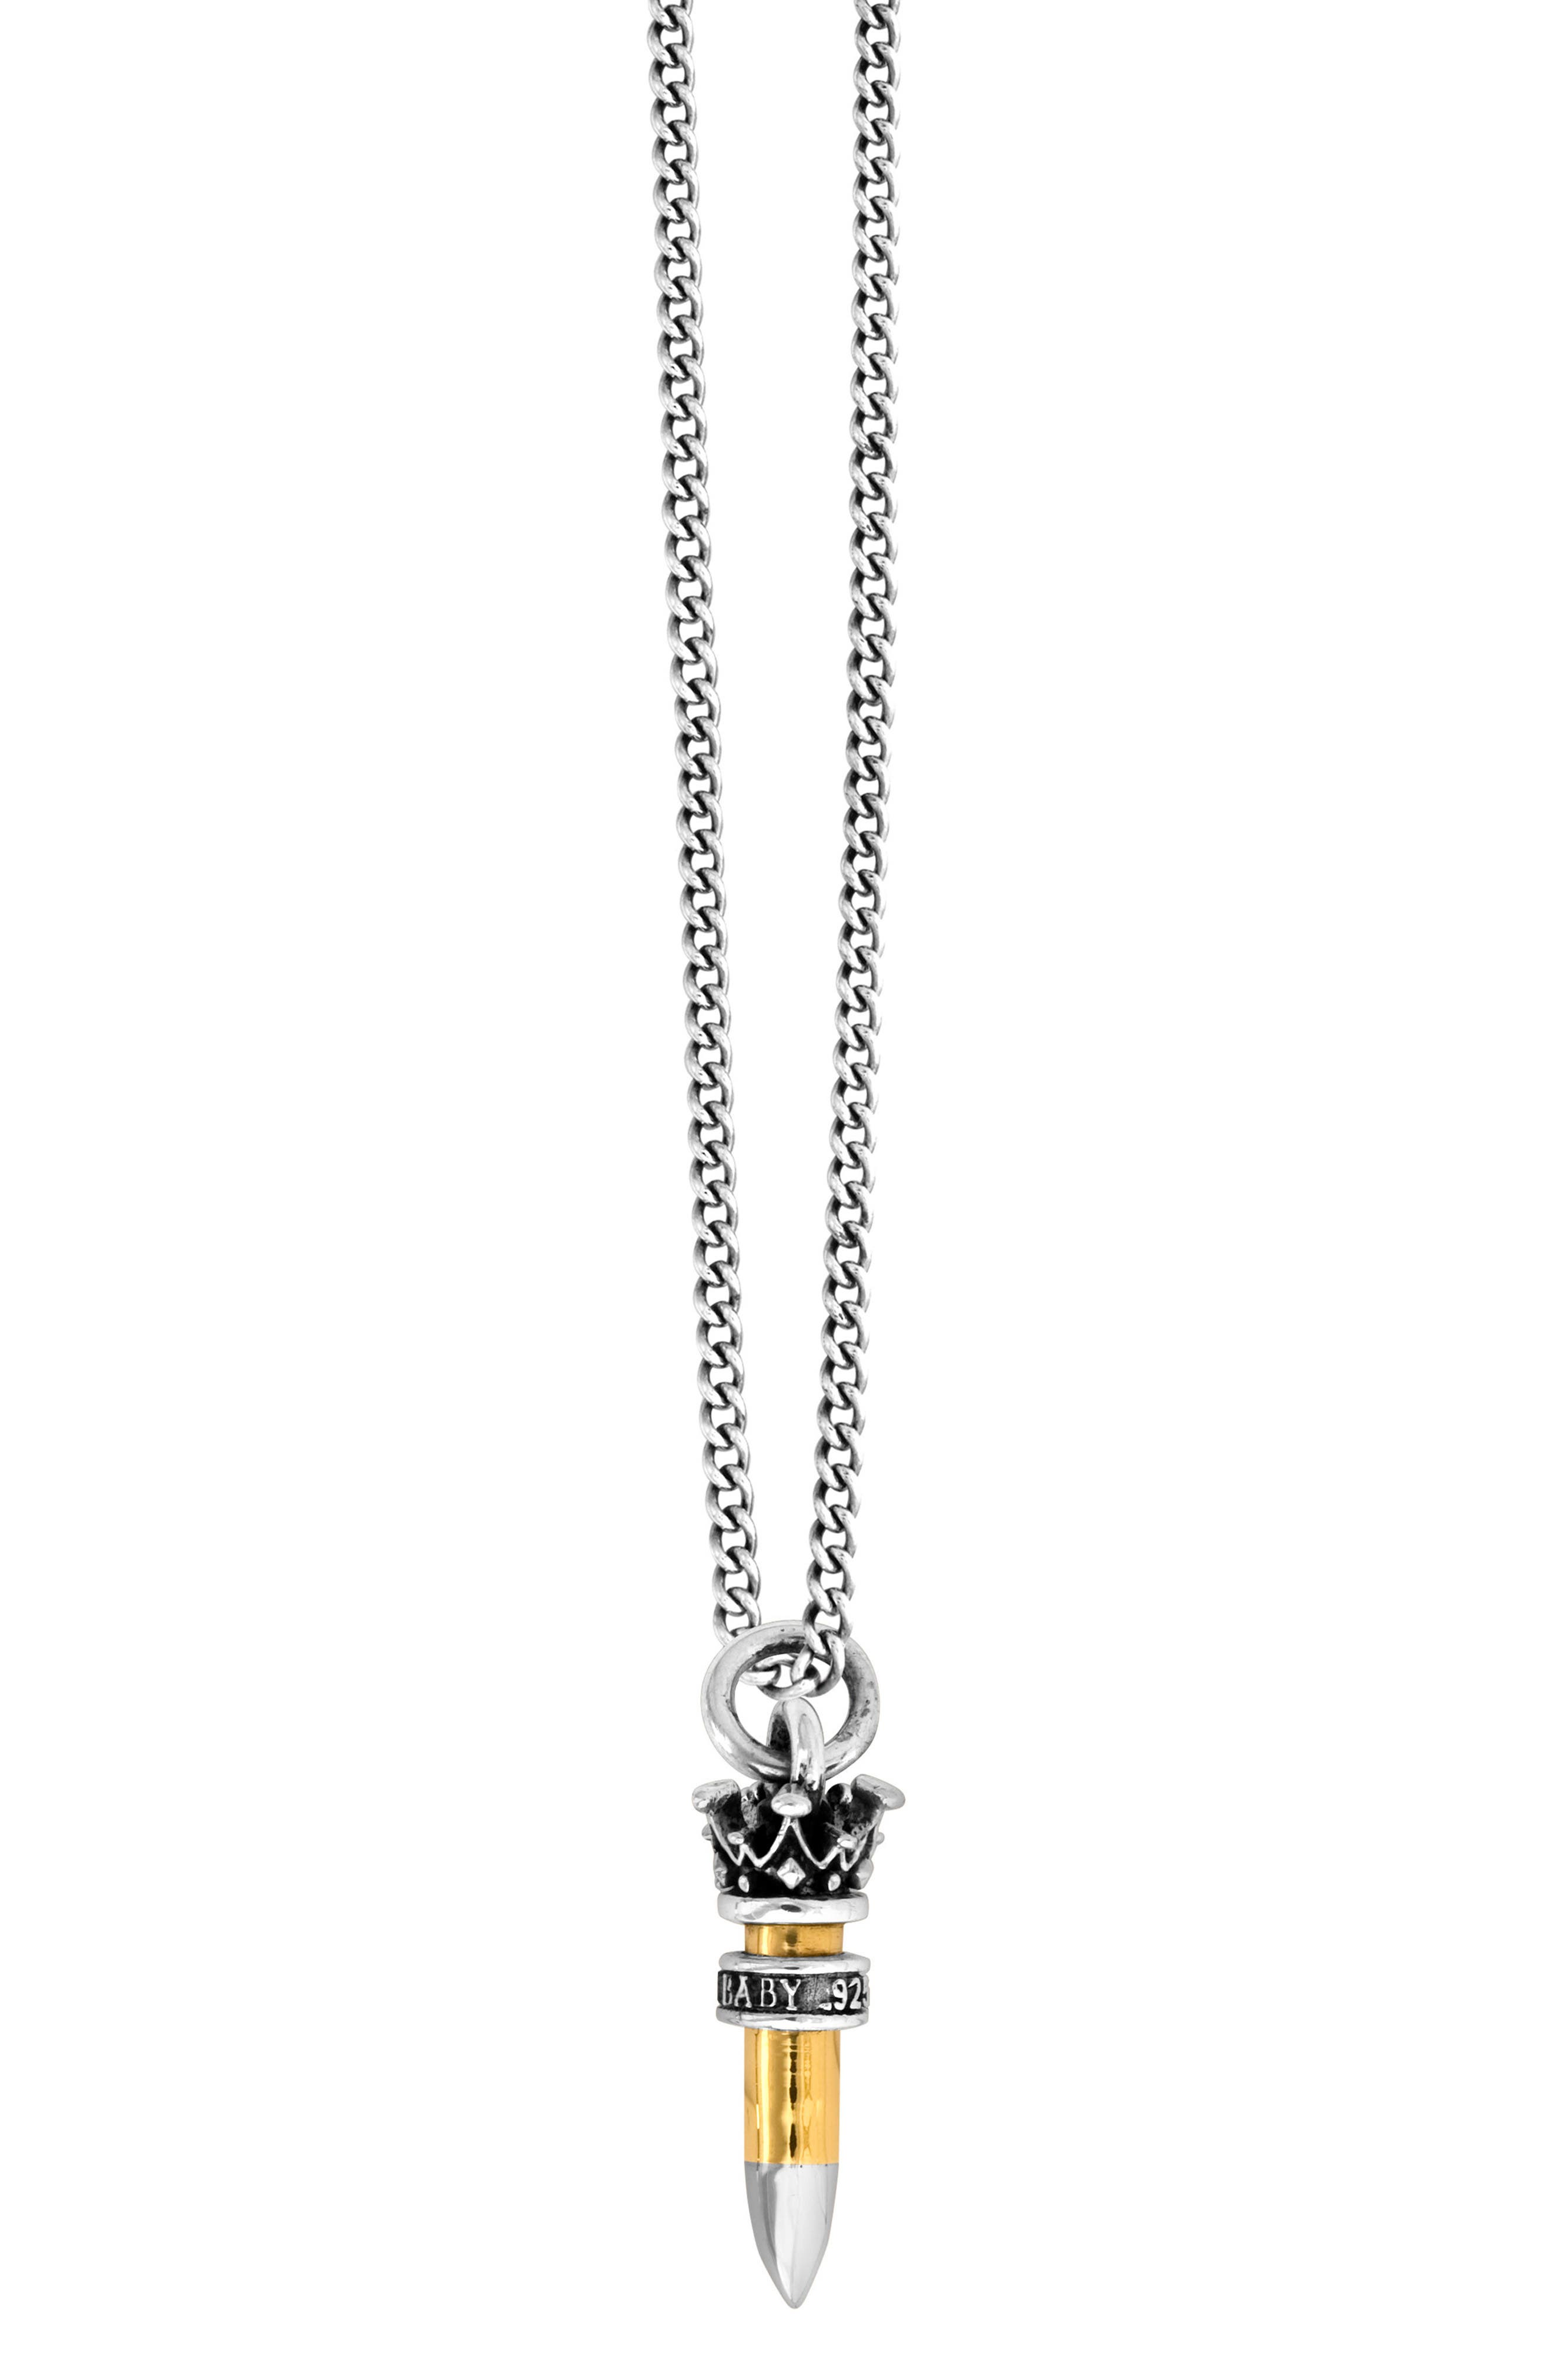 KING BABY .22 Caliber Bullet Pendant Necklace